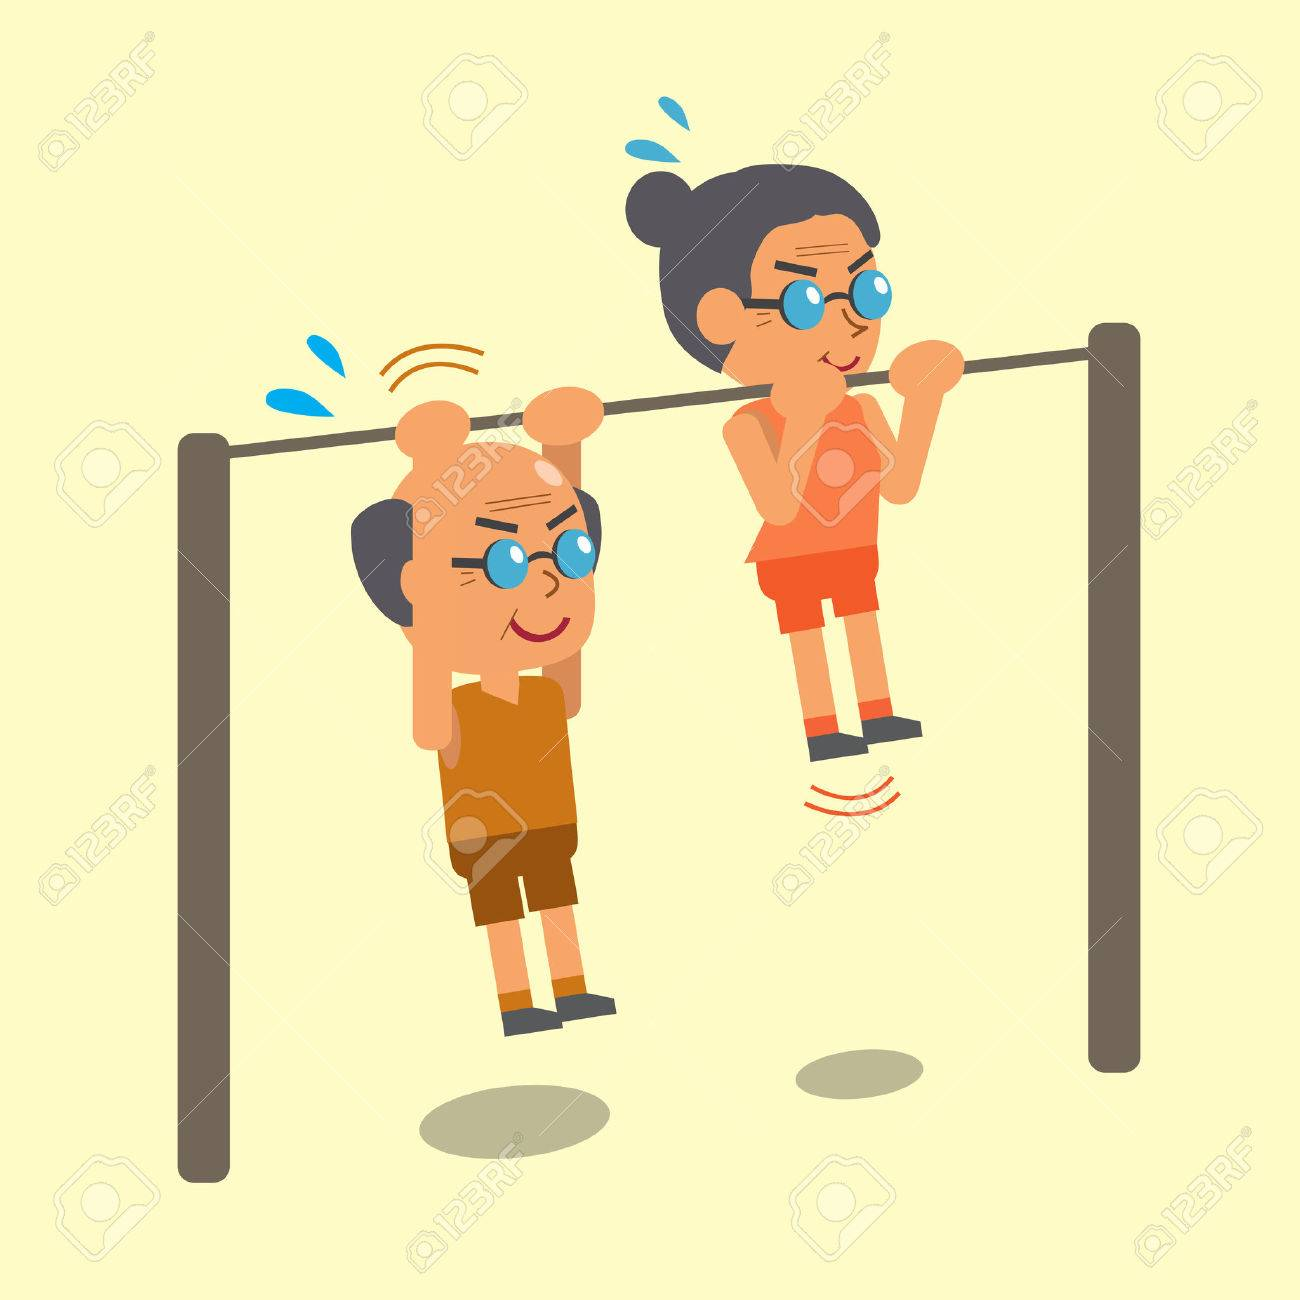 Cartoon old man and old woman doing chin ups exercise together - 44858880